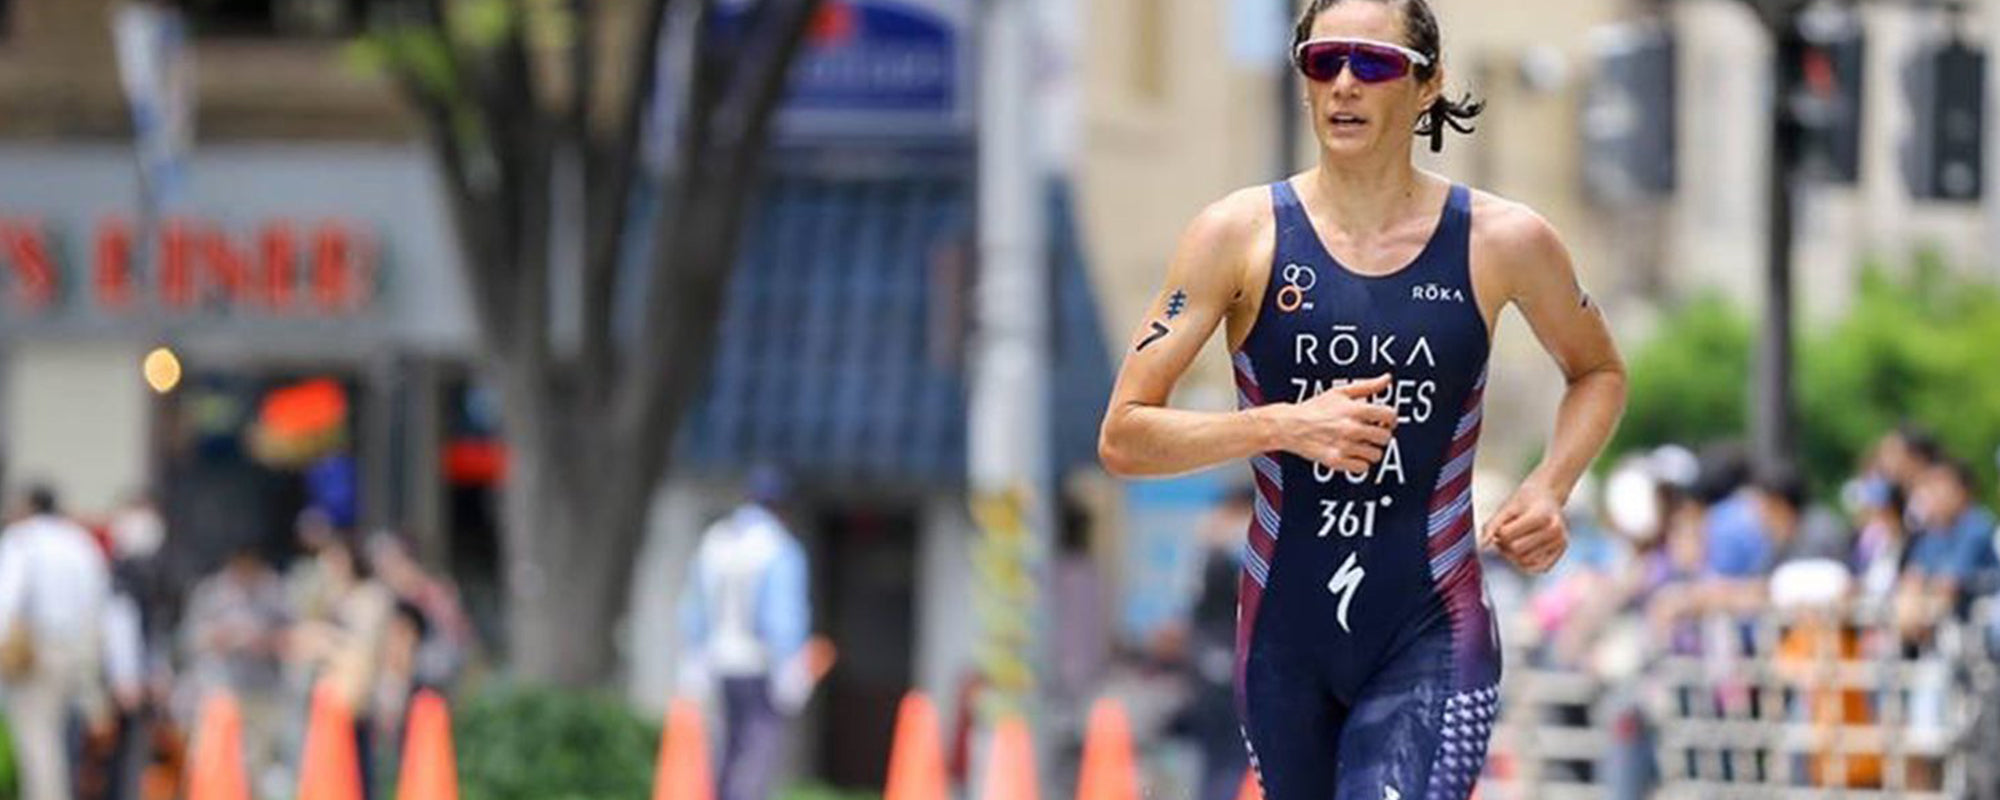 Q&A with World #1 Ranked Triathlete, Katie Zaferes